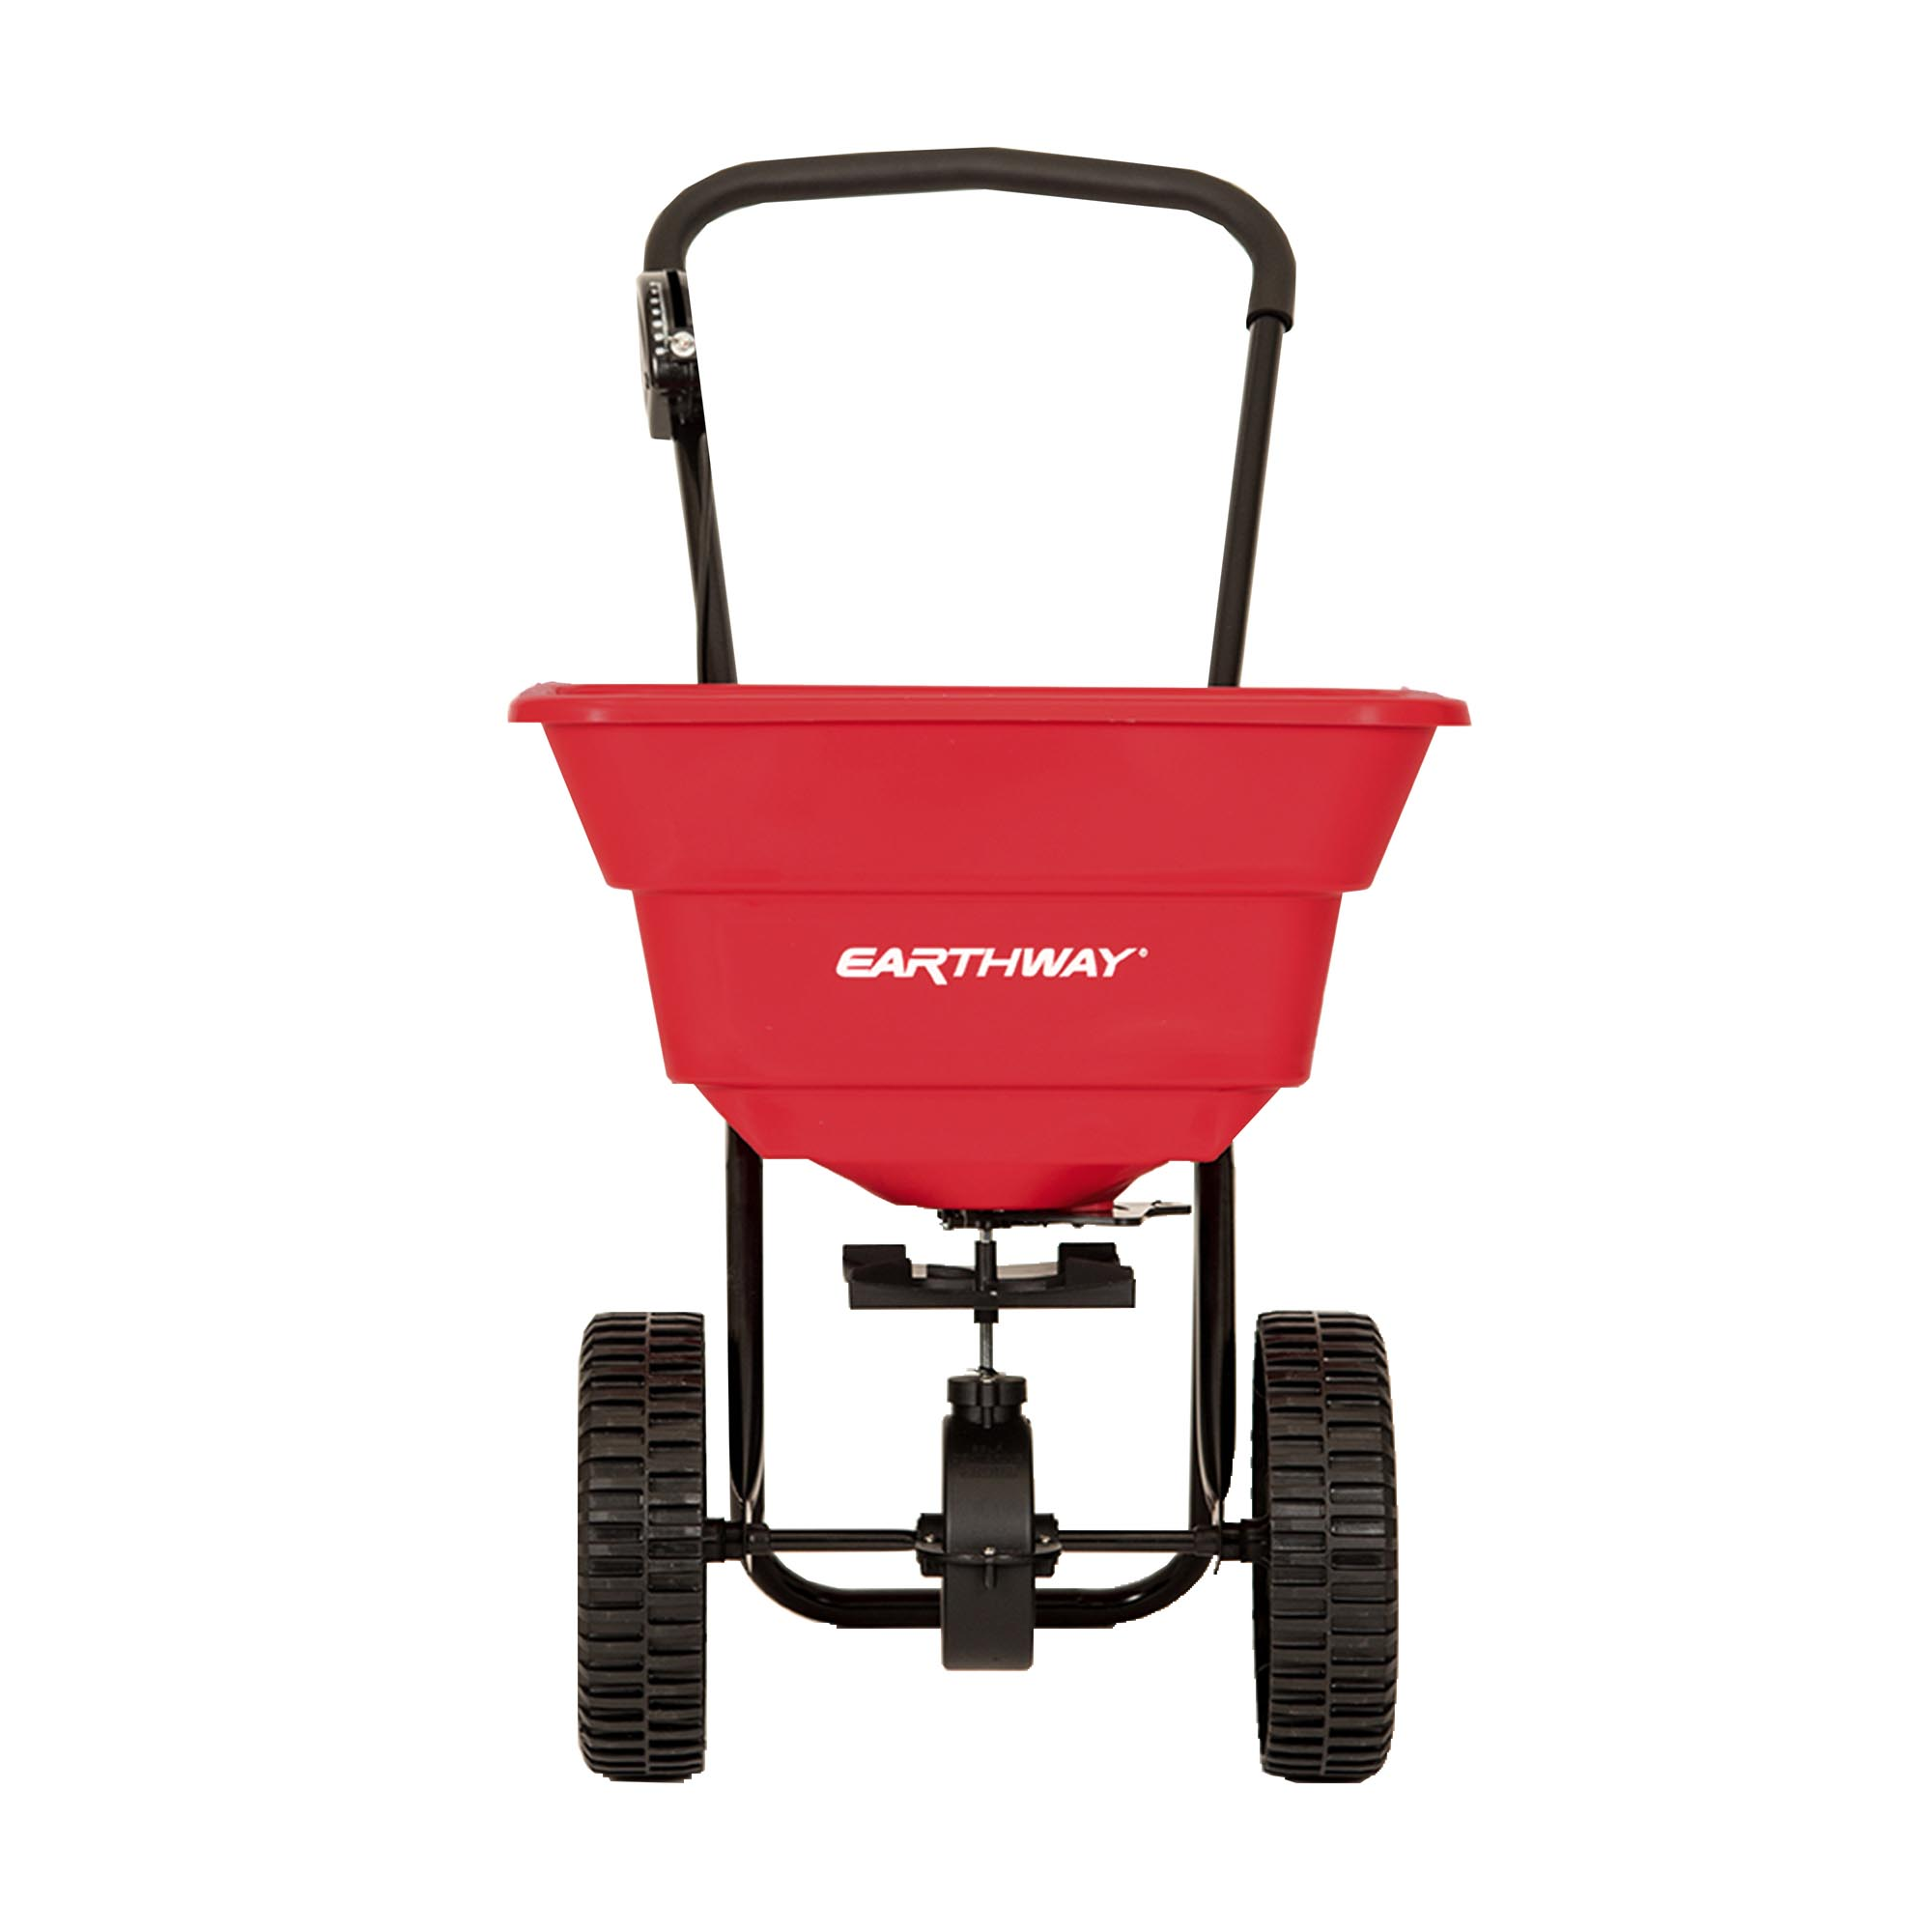 80 LB COMMERCIAL BROADCAST SPREADER WITH POLY TIRES